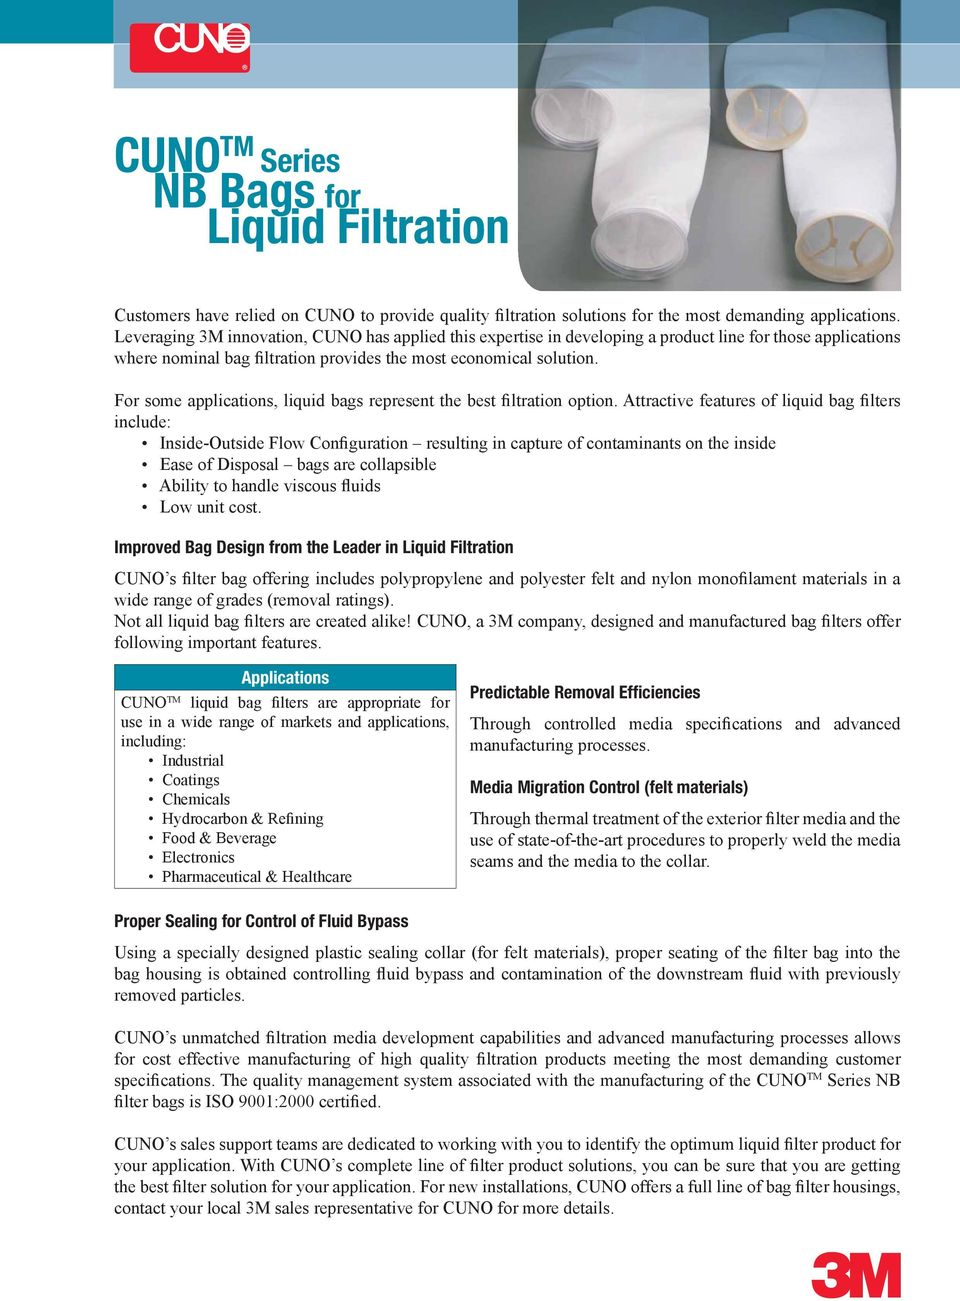 For some applications, liquid bags represent the best filtration option.